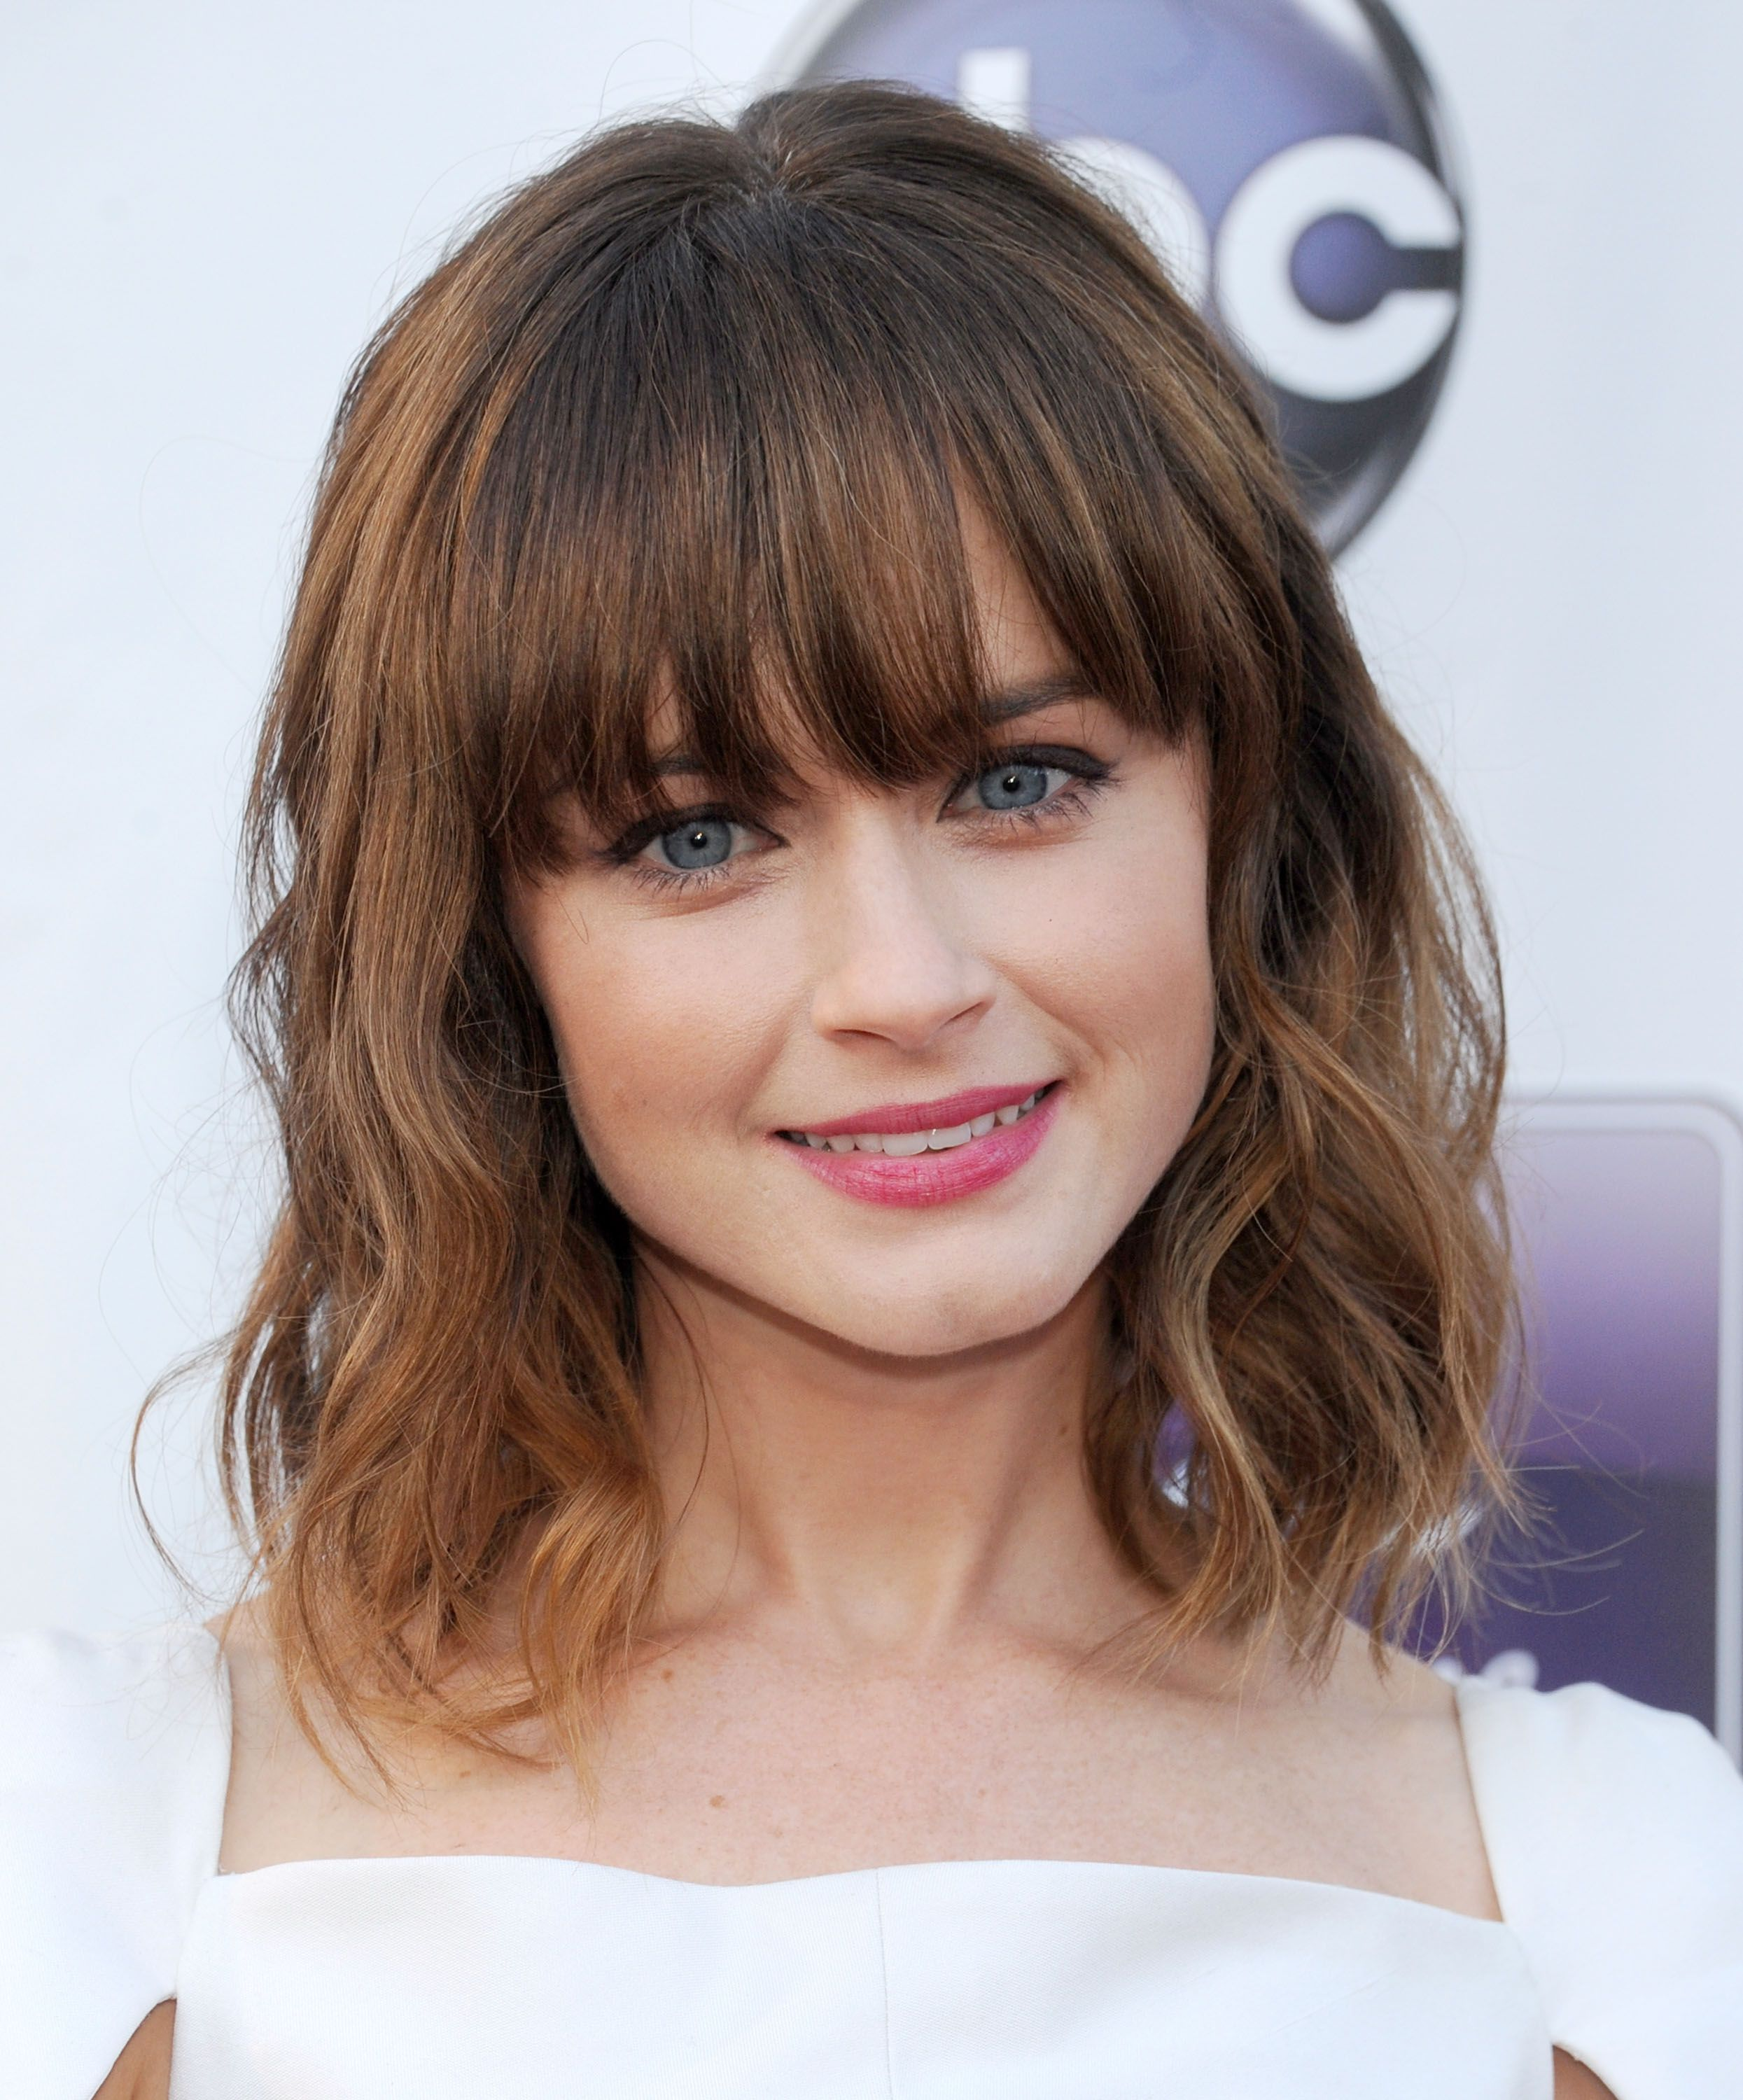 35 Best Hairstyles With Bangs - Photos of Celebrity Haircuts With Bangs